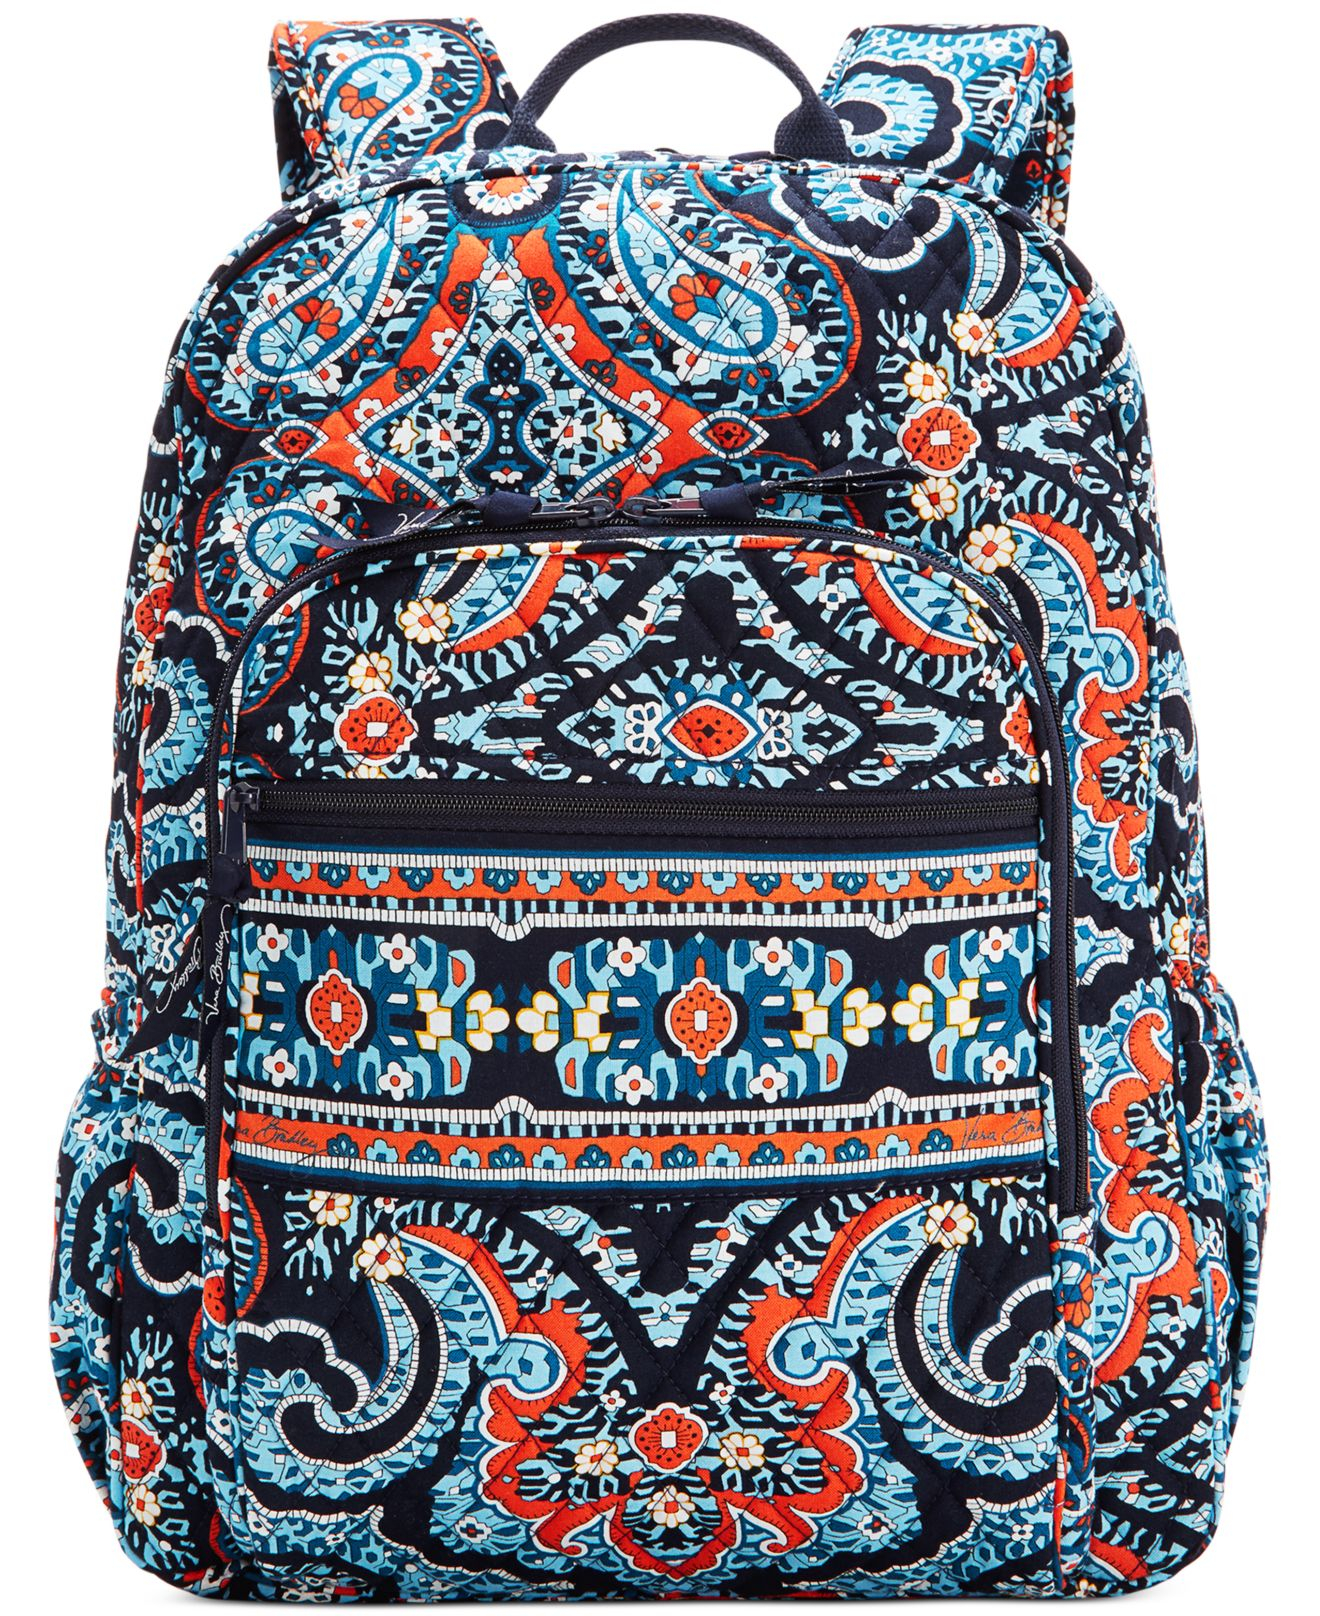 5ec59a2742 Lyst - Vera Bradley Campus Backpack in Blue